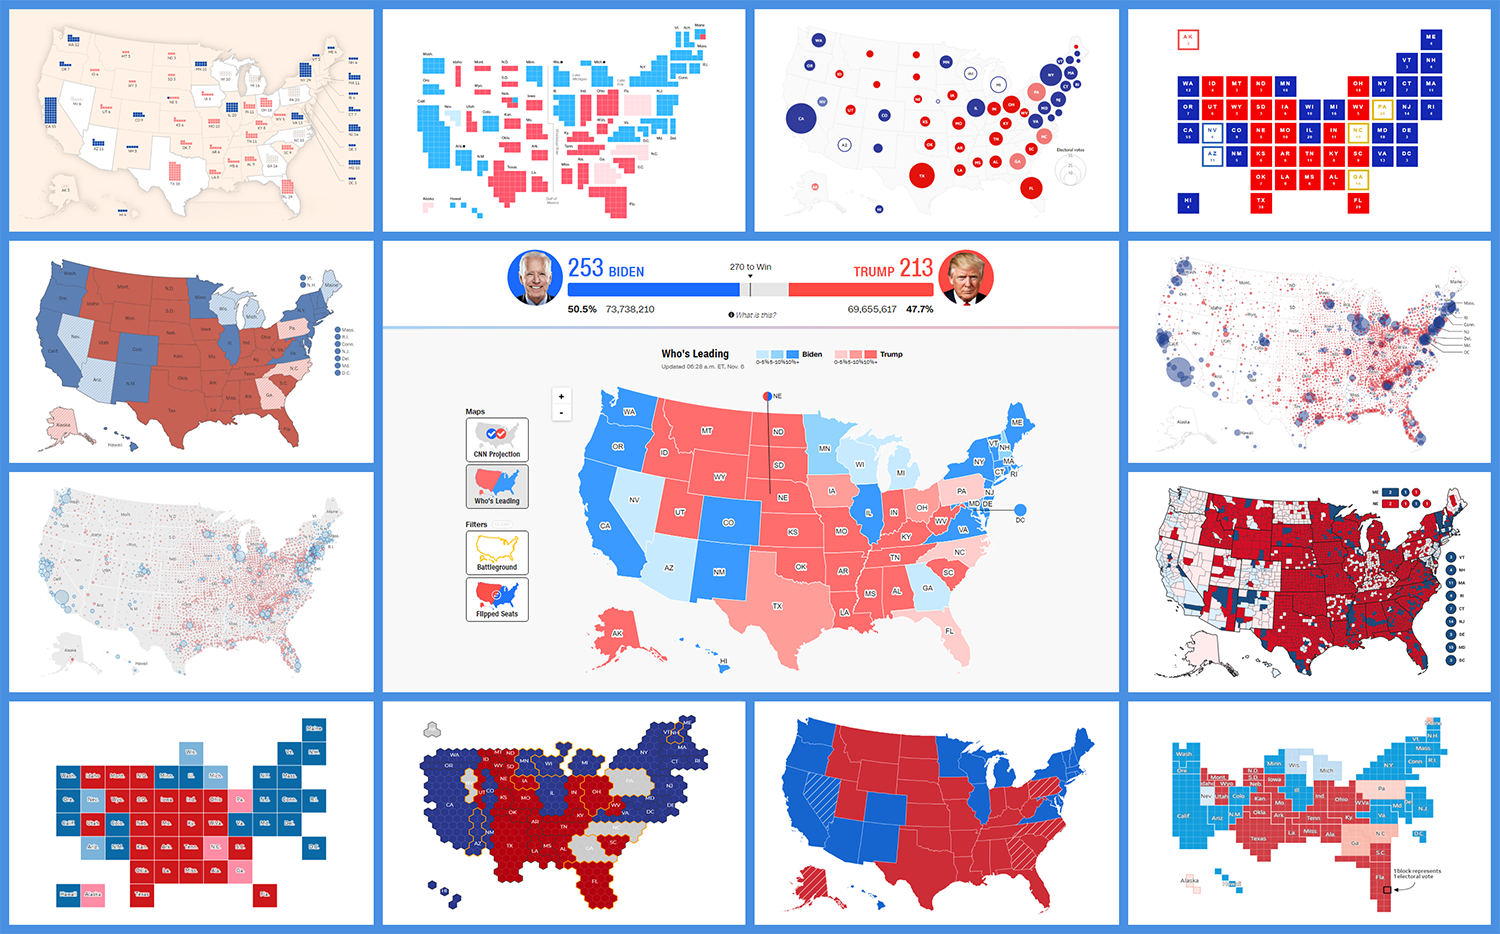 Us Map Showing Election Results Election Maps Visualizing 2020 U.S. Presidential Electoral Vote